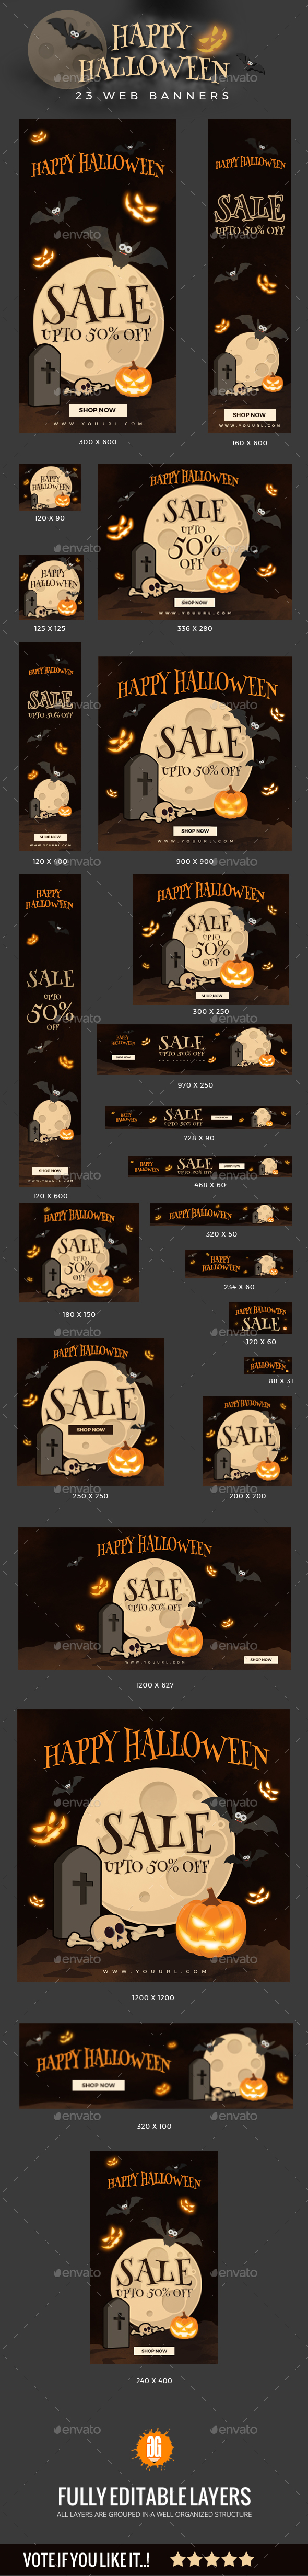 Halloween-Banner-V1 - Banners & Ads Web Elements